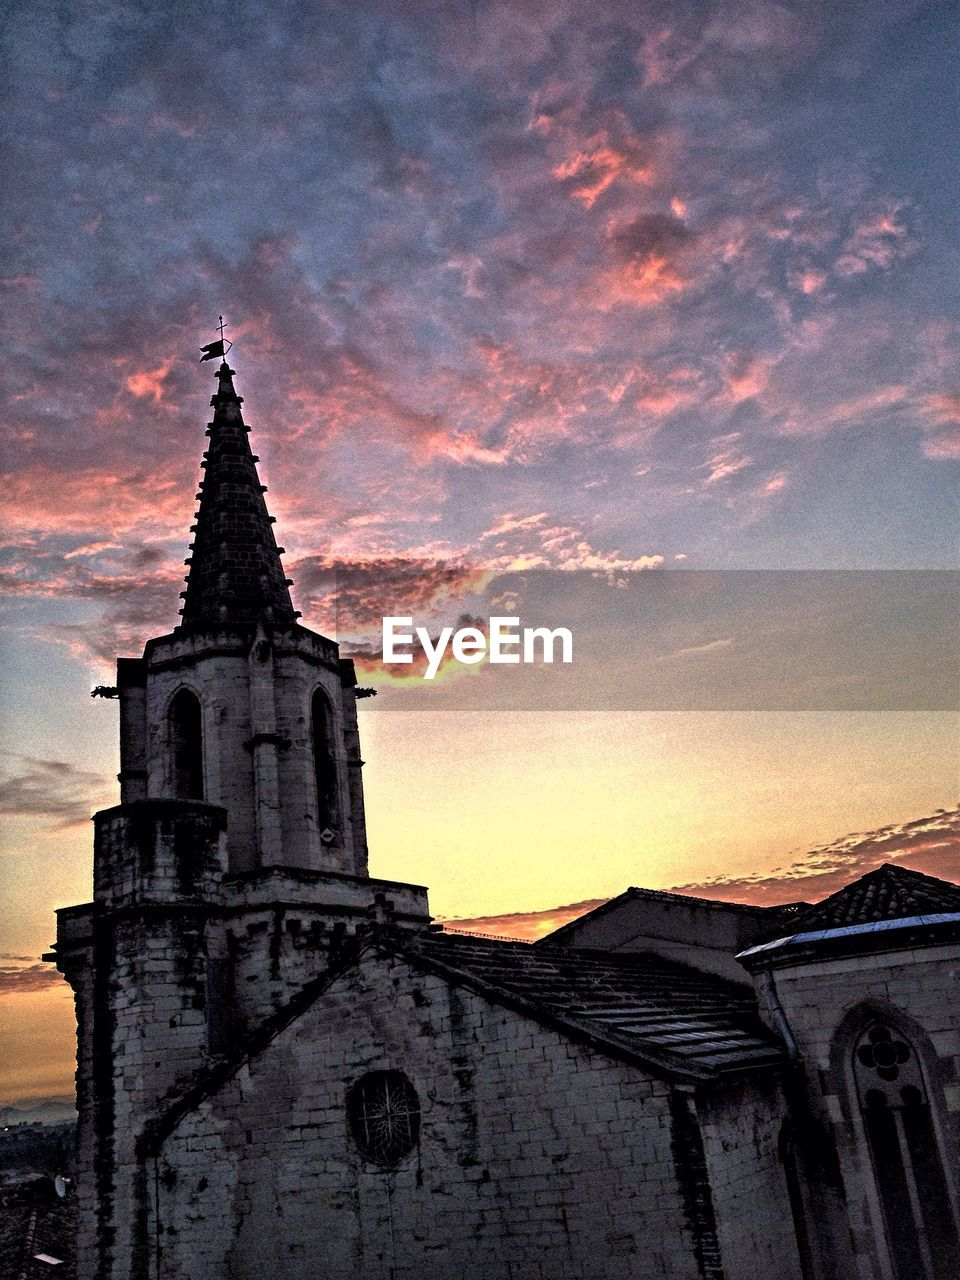 religion, spirituality, architecture, sunset, place of worship, building exterior, built structure, sky, no people, history, low angle view, outdoors, cloud - sky, travel destinations, bell tower, nature, day